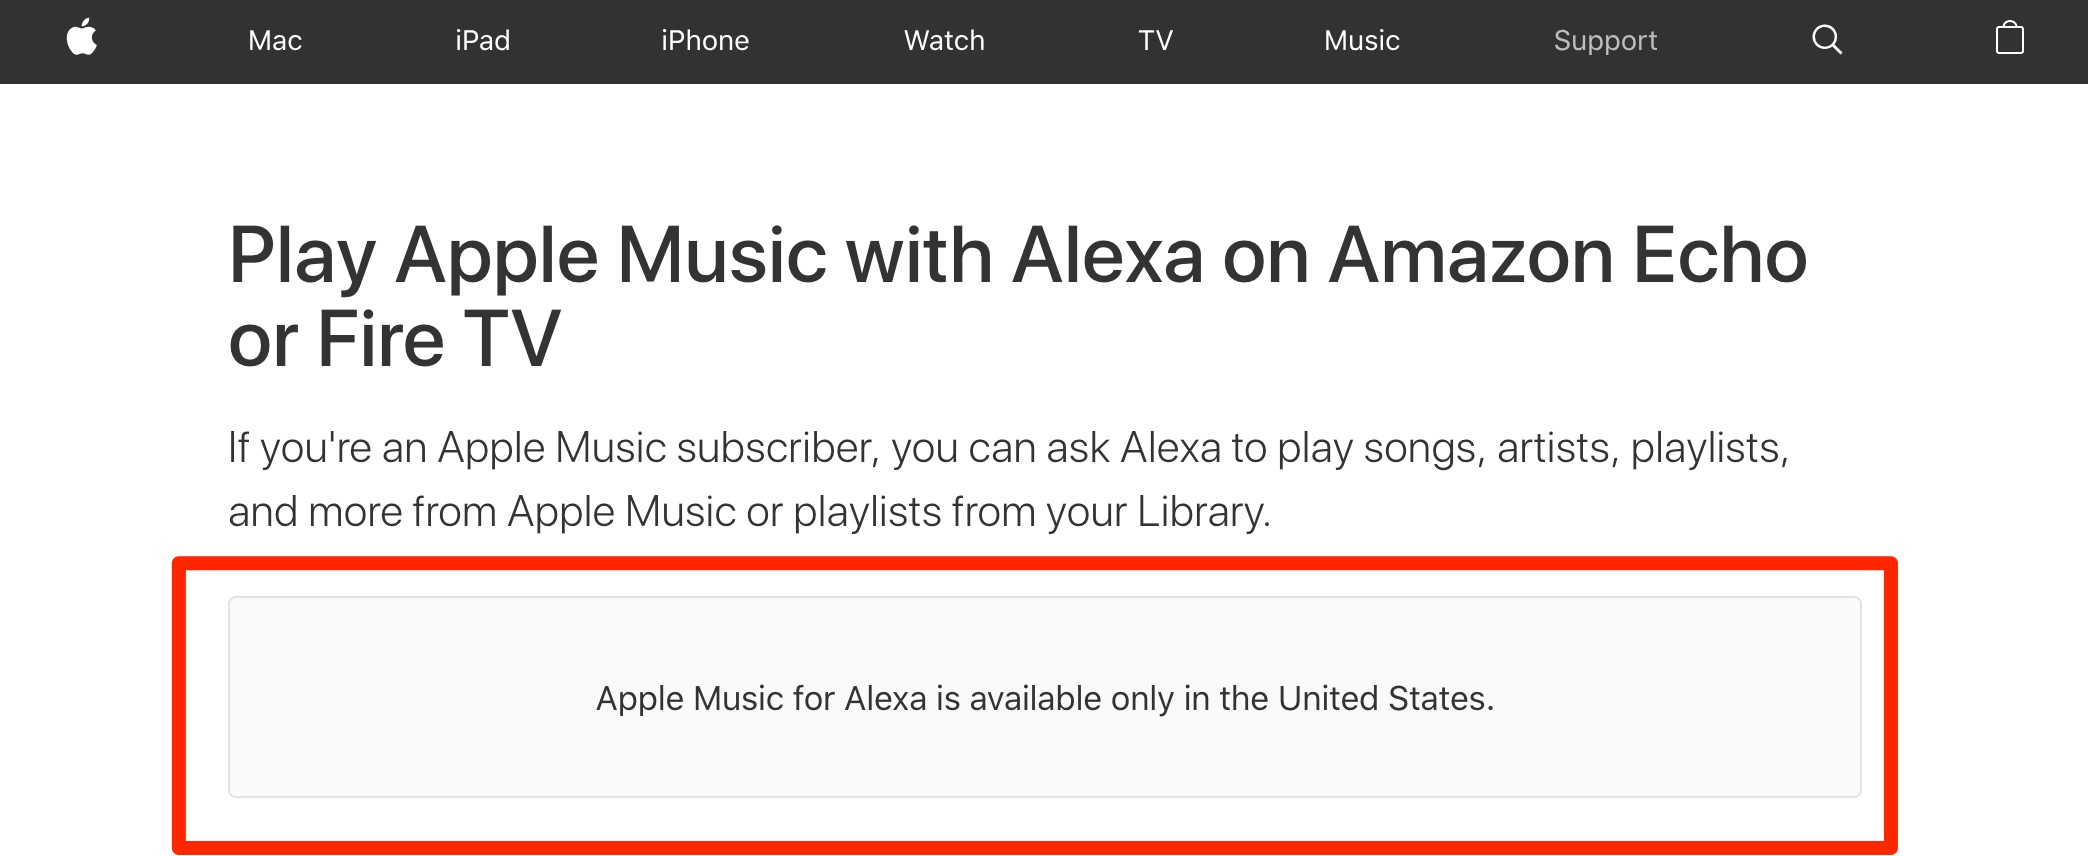 Aviso de que Apple Music para Echo y Fire TV sólo está disponible en EEUU